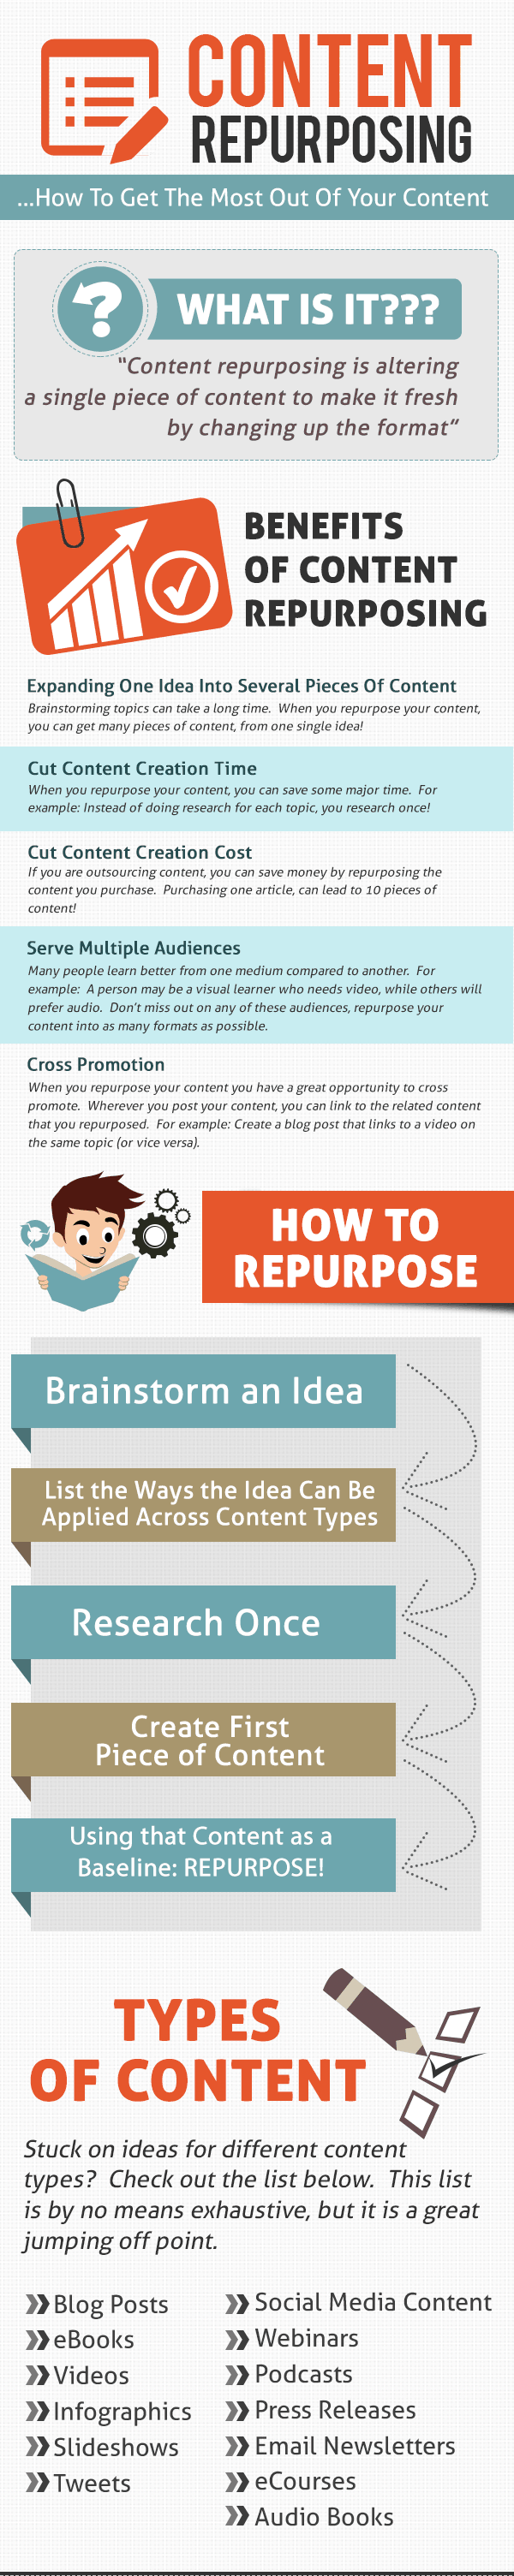 Content repurposing infographic